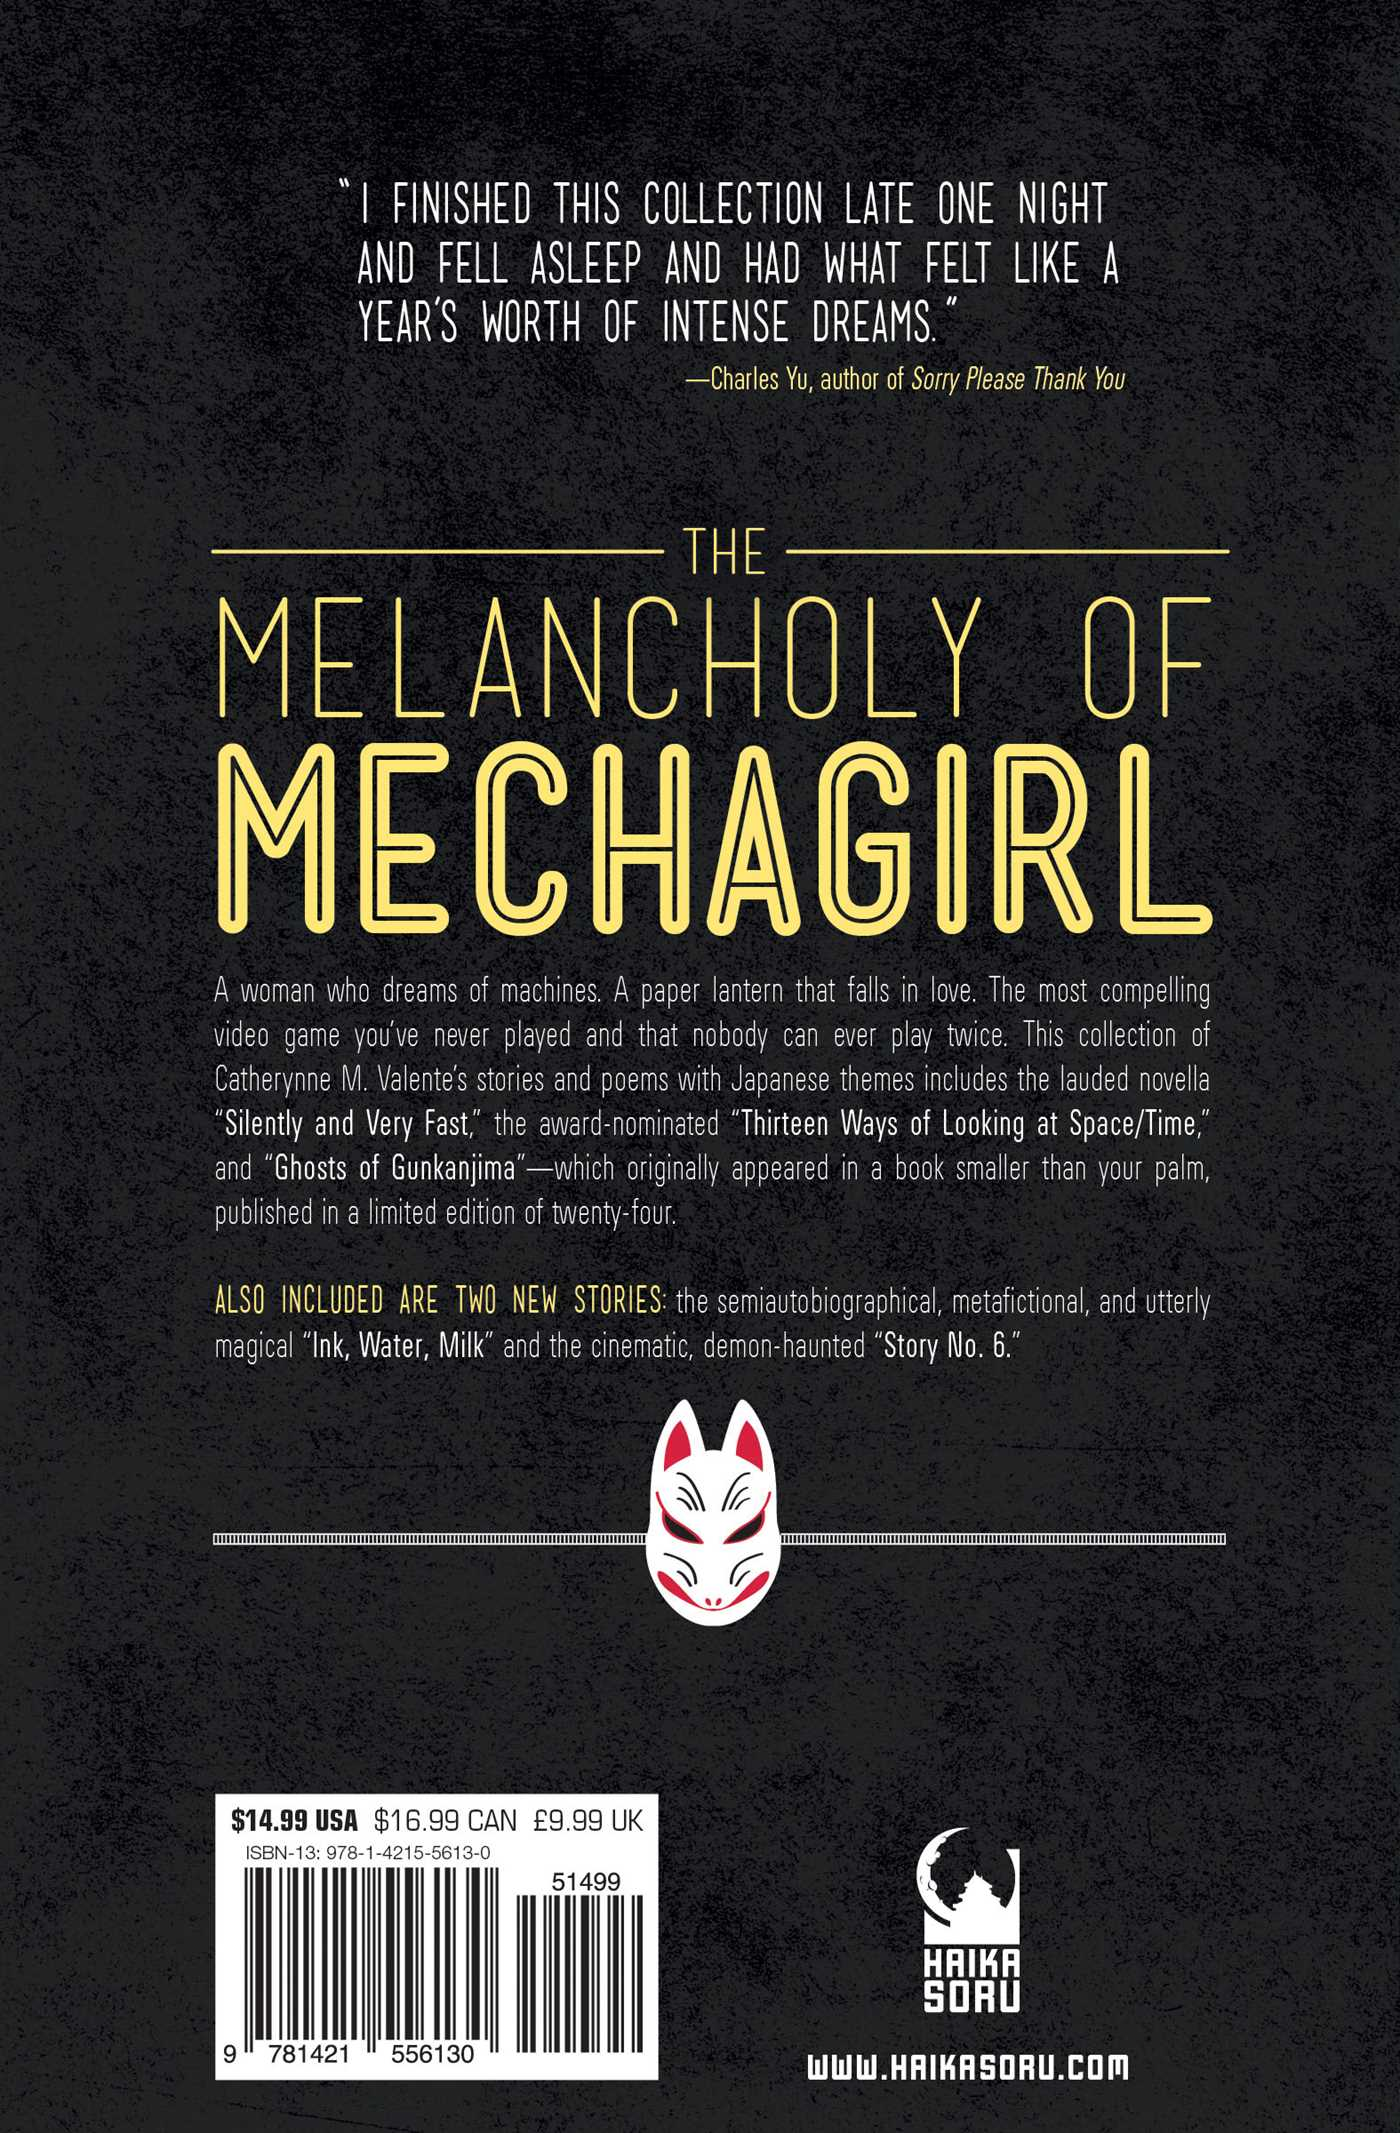 The-melancholy-of-mechagirl-9781421556130_hr-back